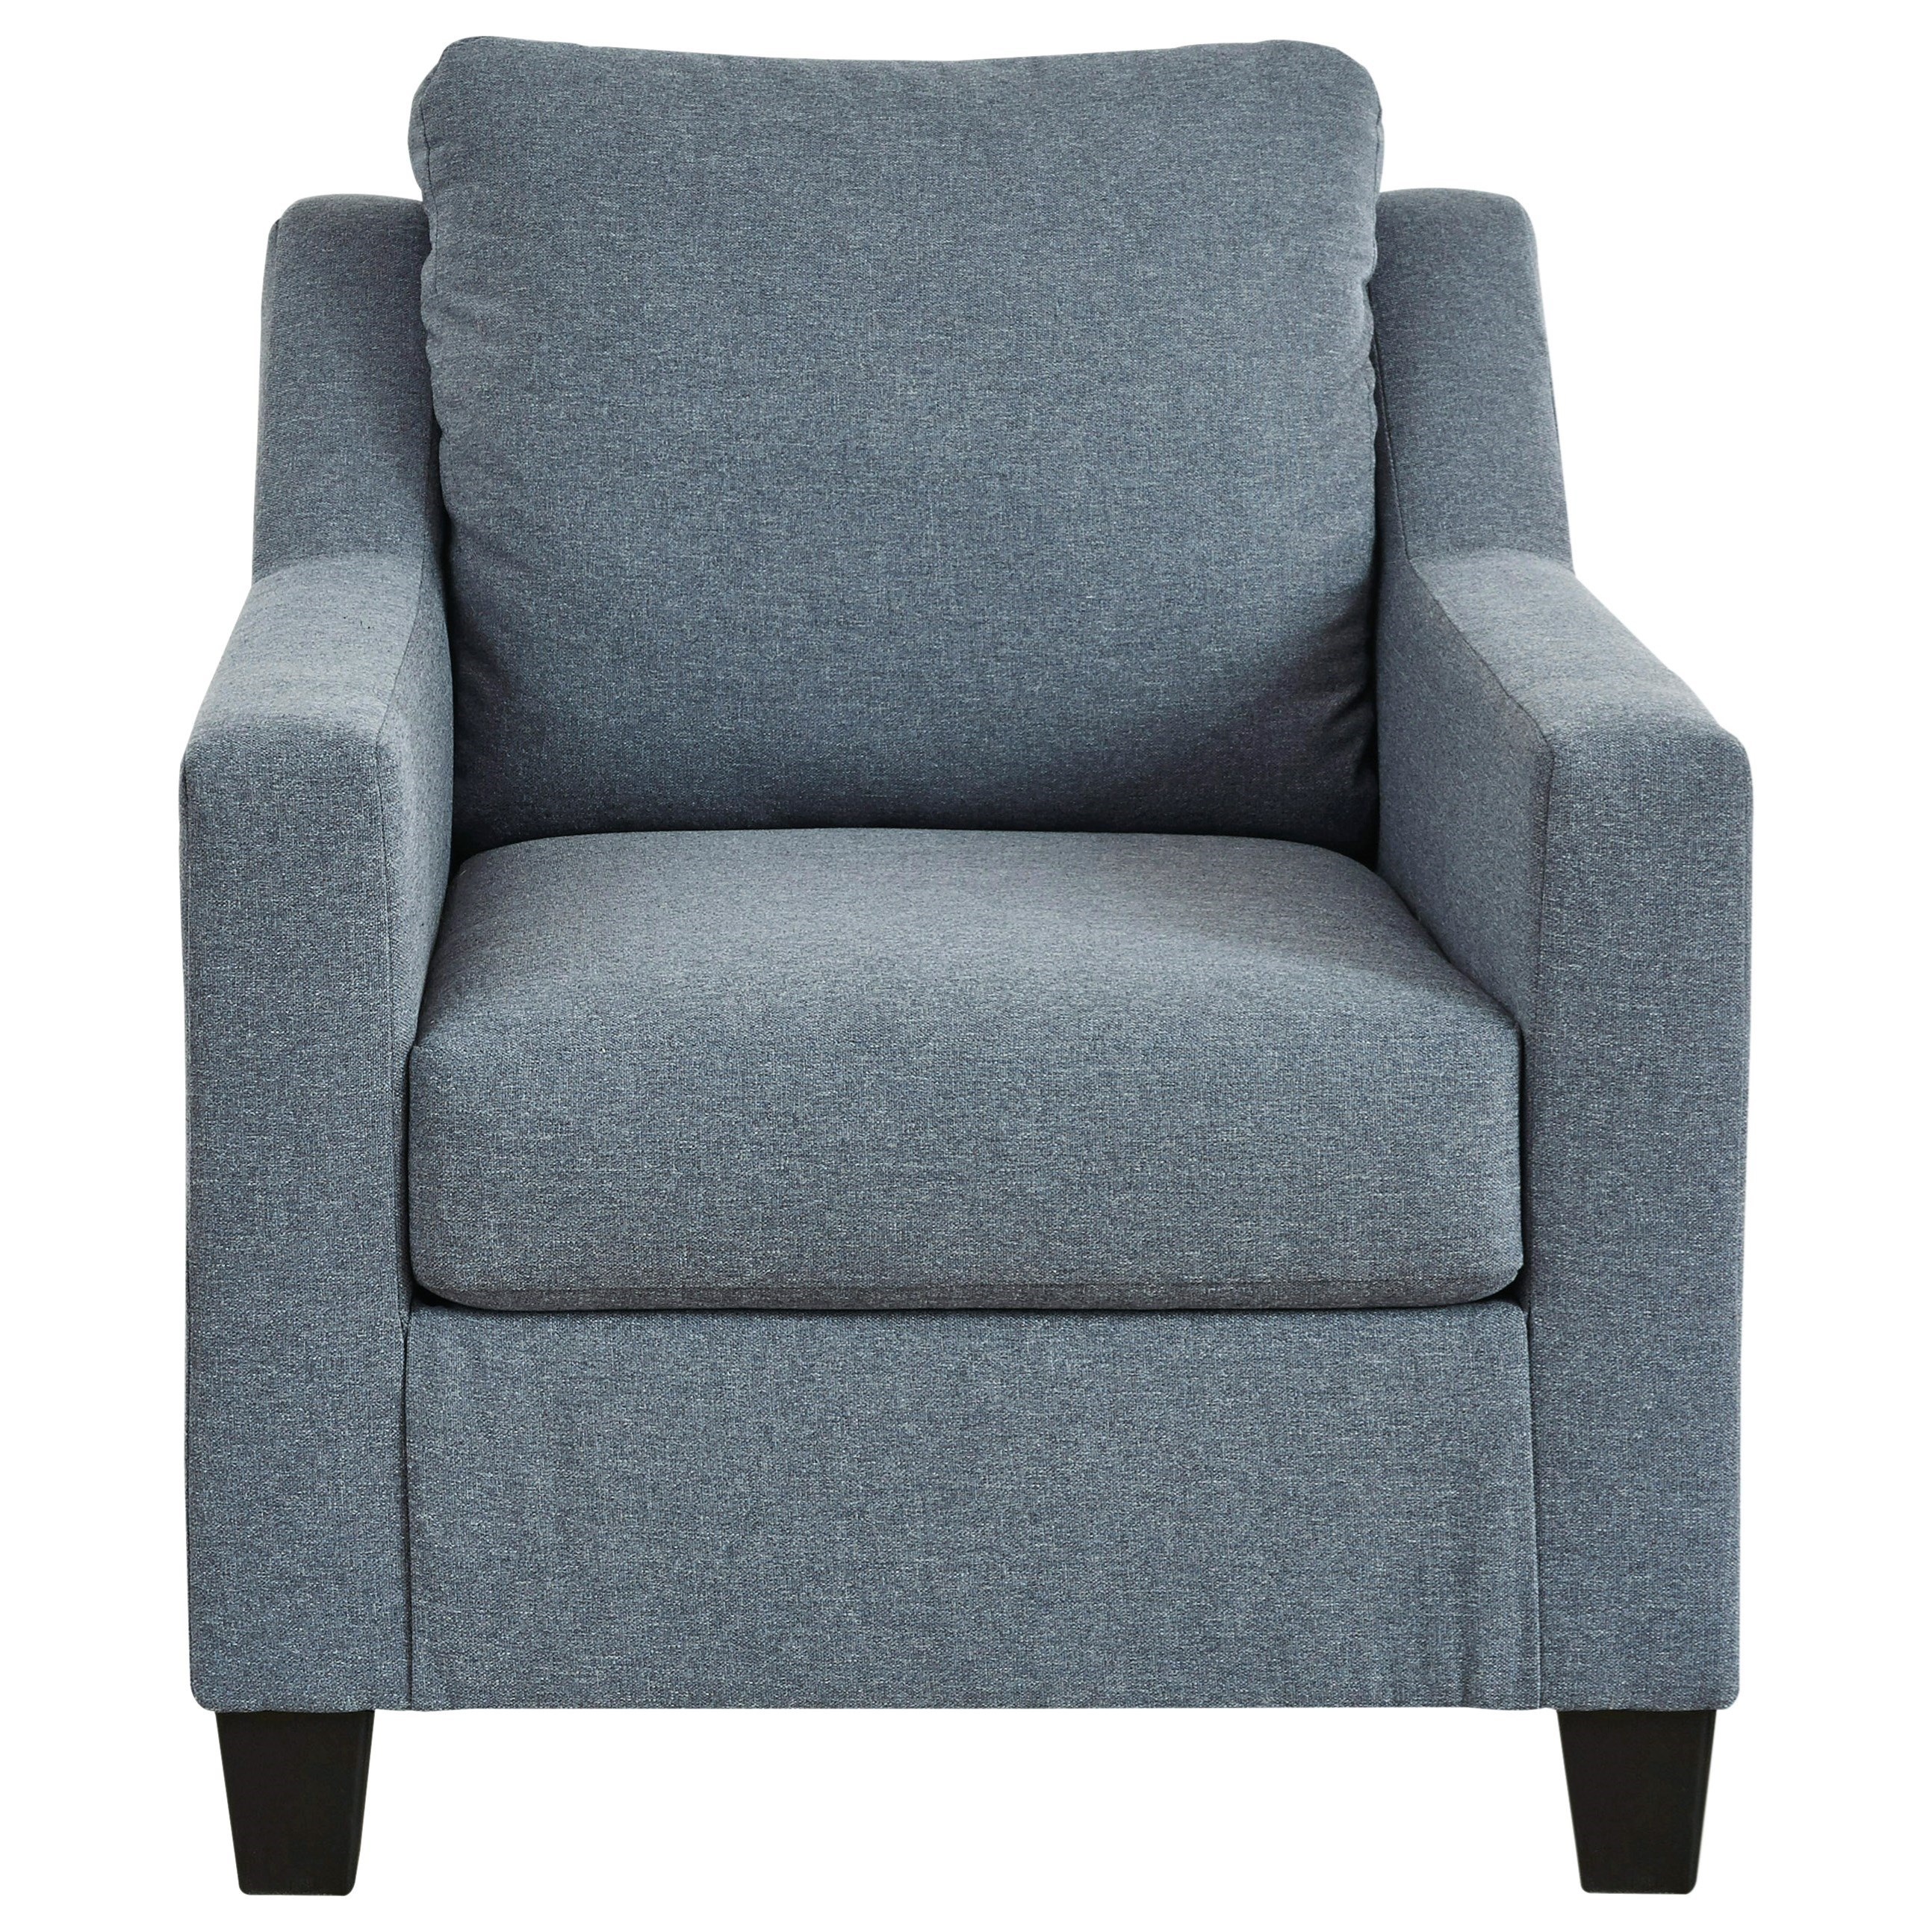 Lemly Chair by Benchcraft at Beck's Furniture